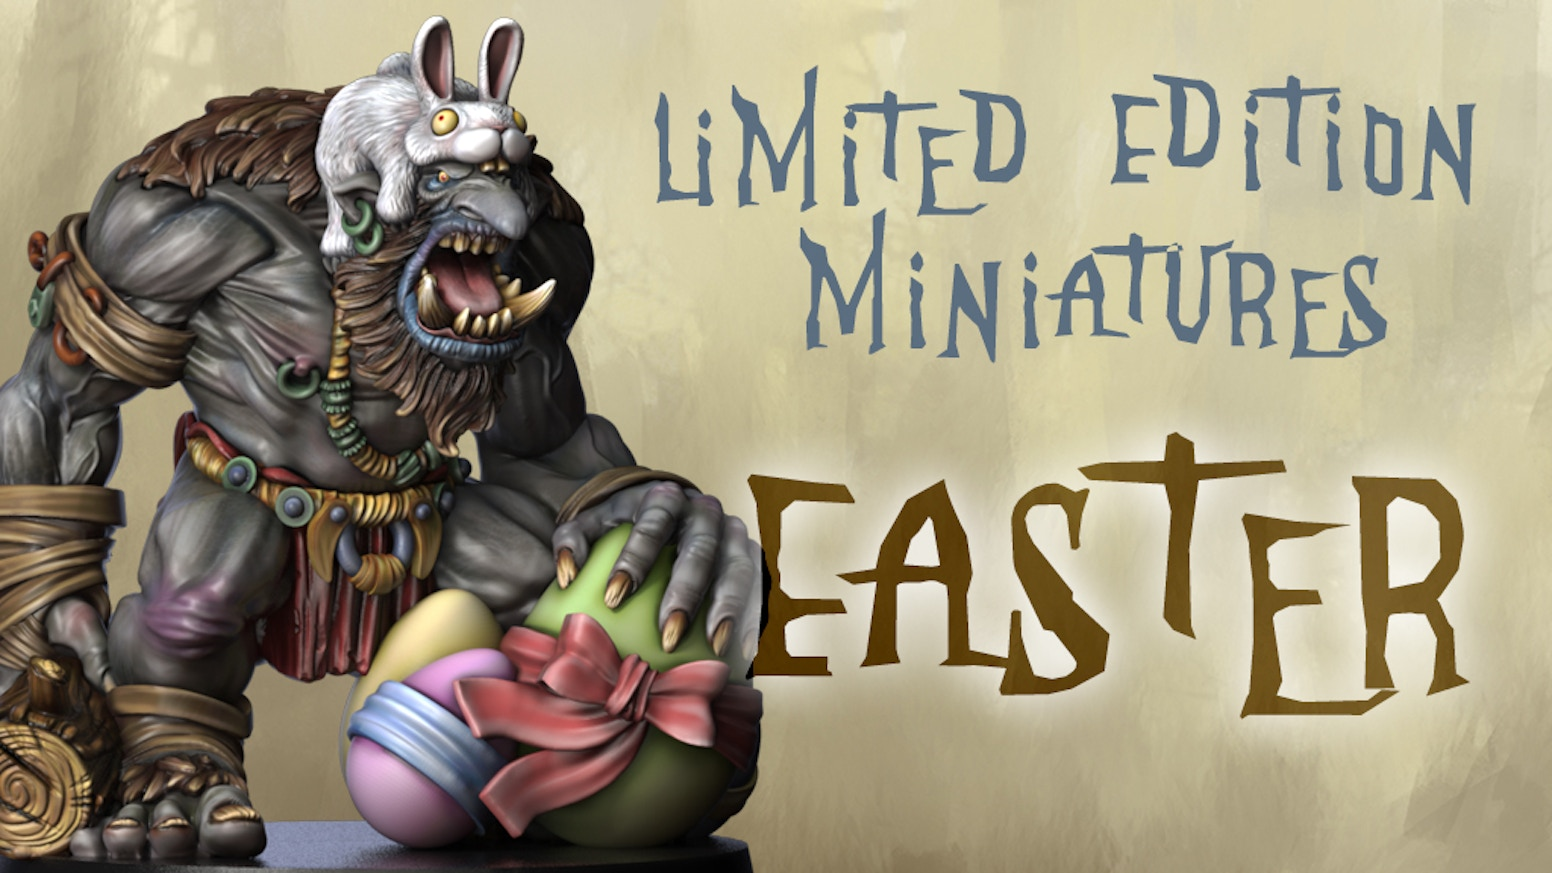 For all collectors, painters and gamers: Two limited edition miniatures created to celebrate this Easter 2017 with a fantasy style!